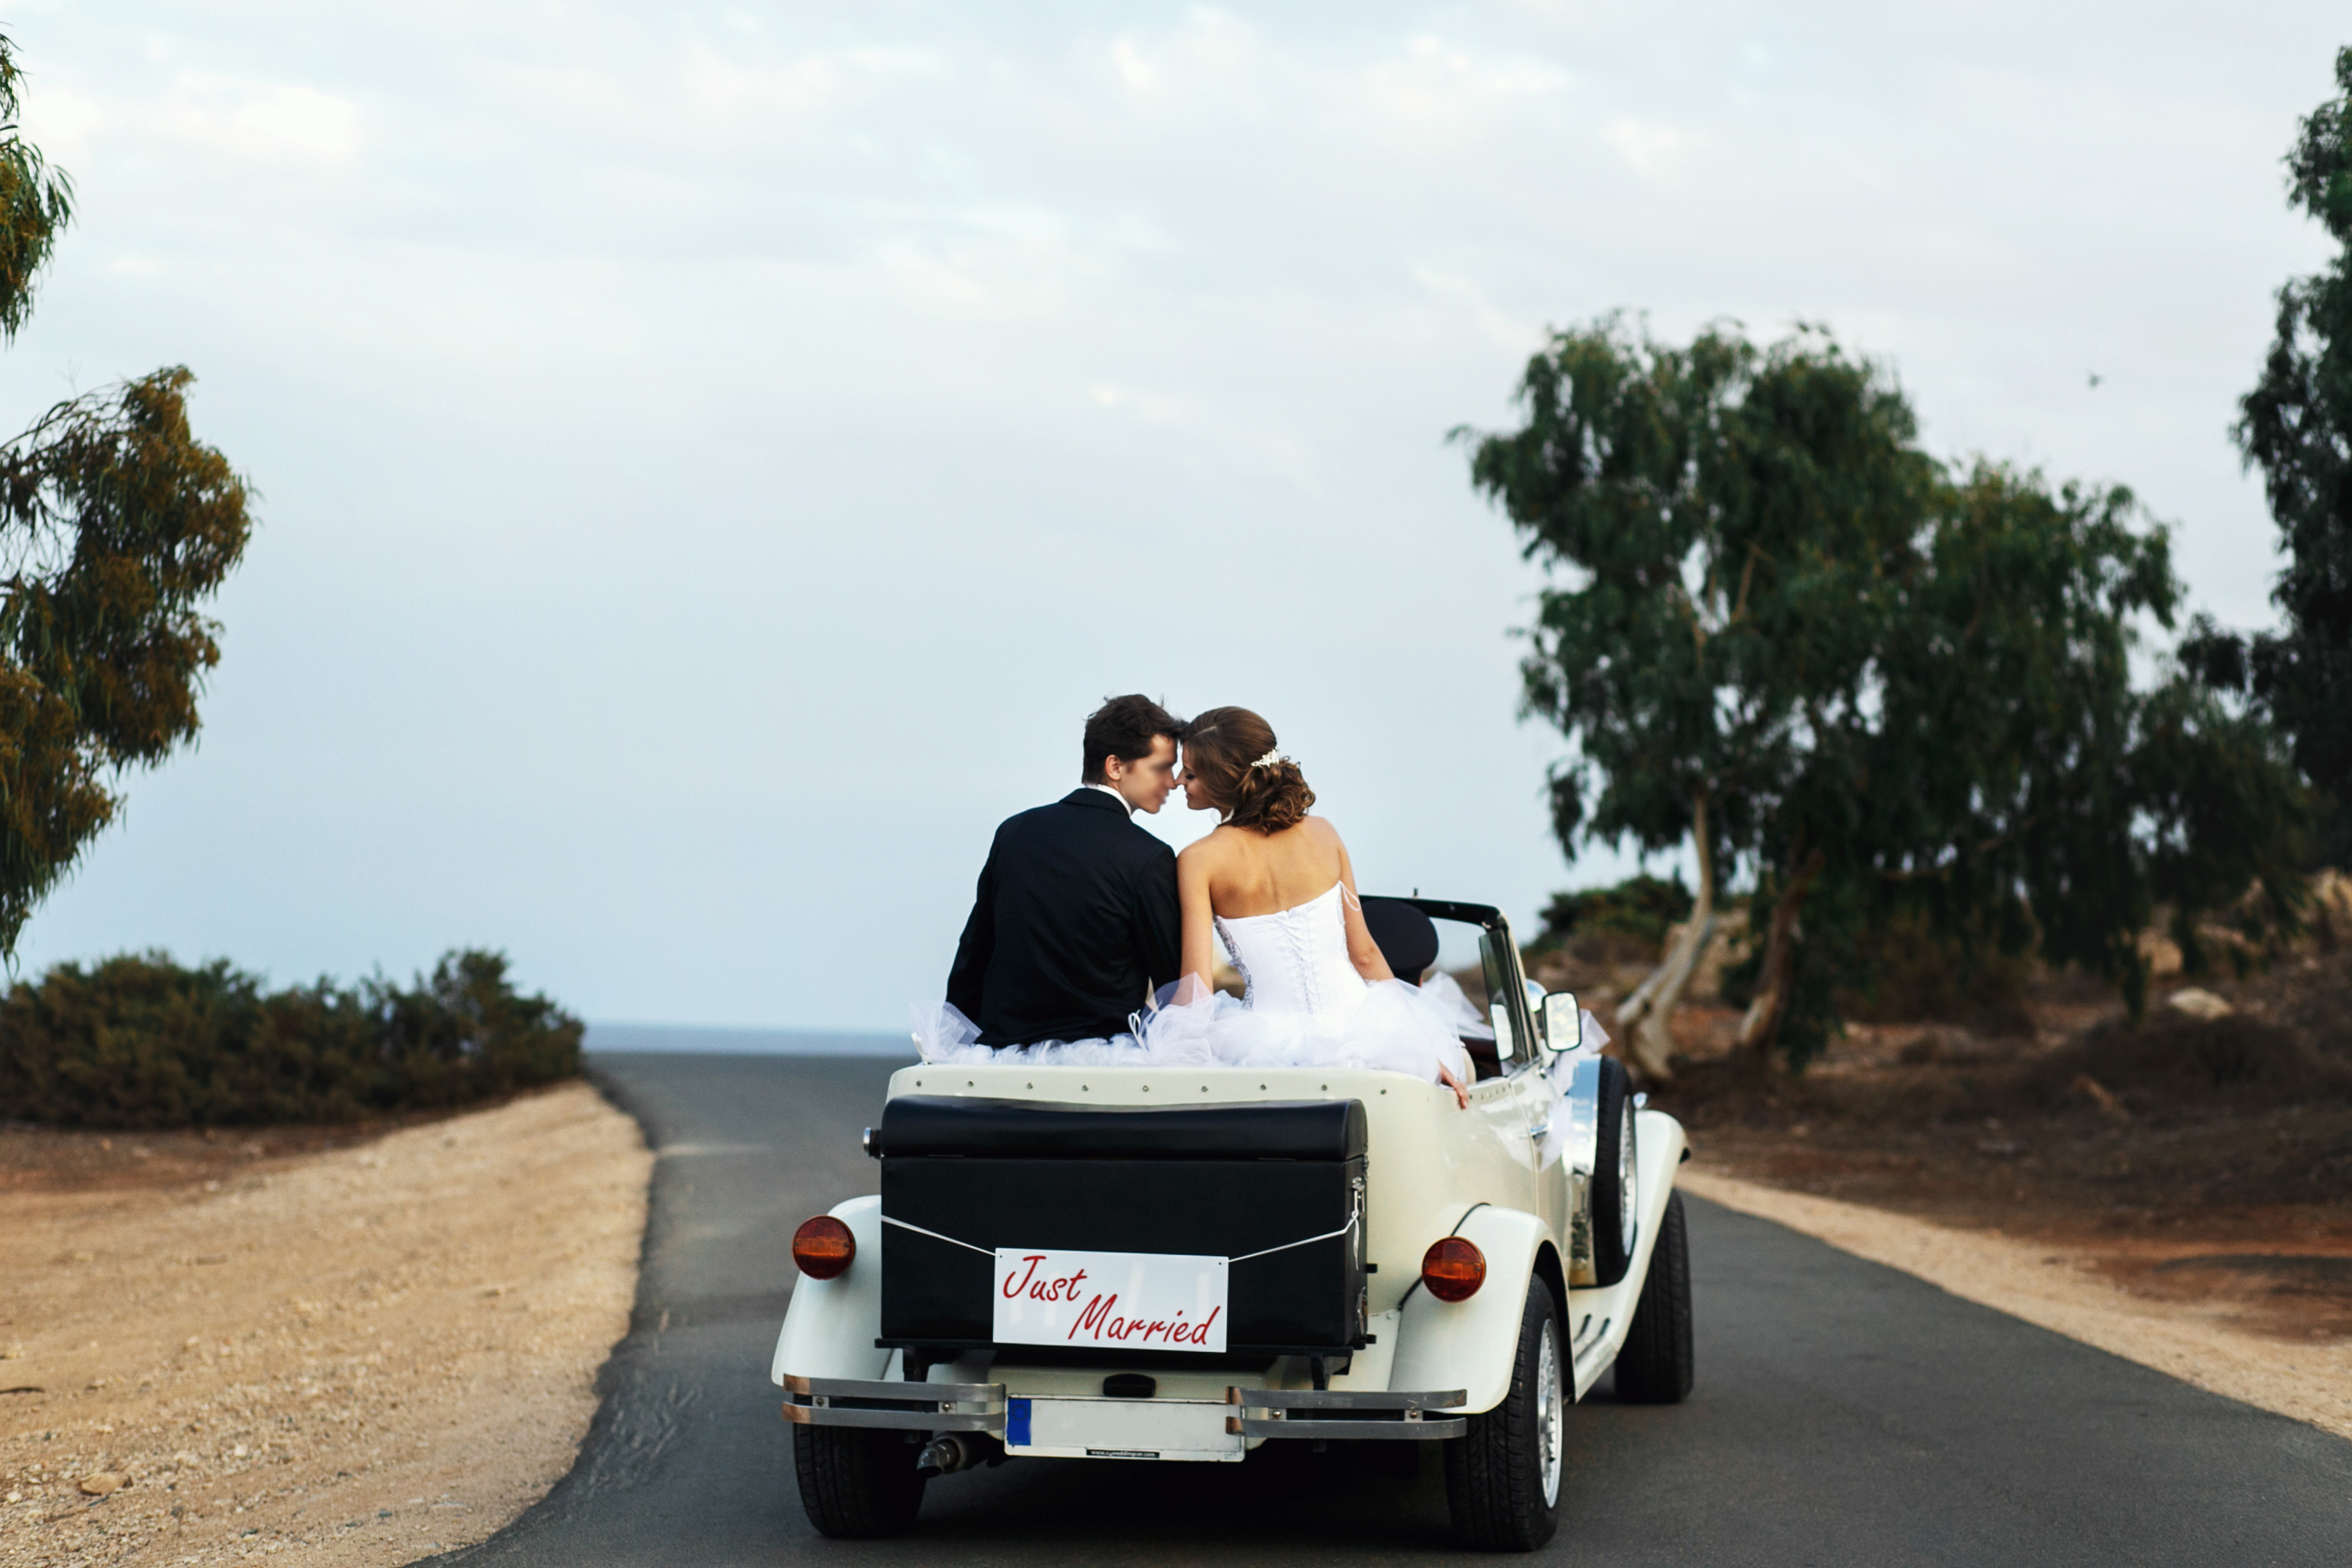 5-Perfect-Ideas-for-Your-Free-Wedding-Website-Shutterstock-Bride-and-Groom-in-Vintage-Car